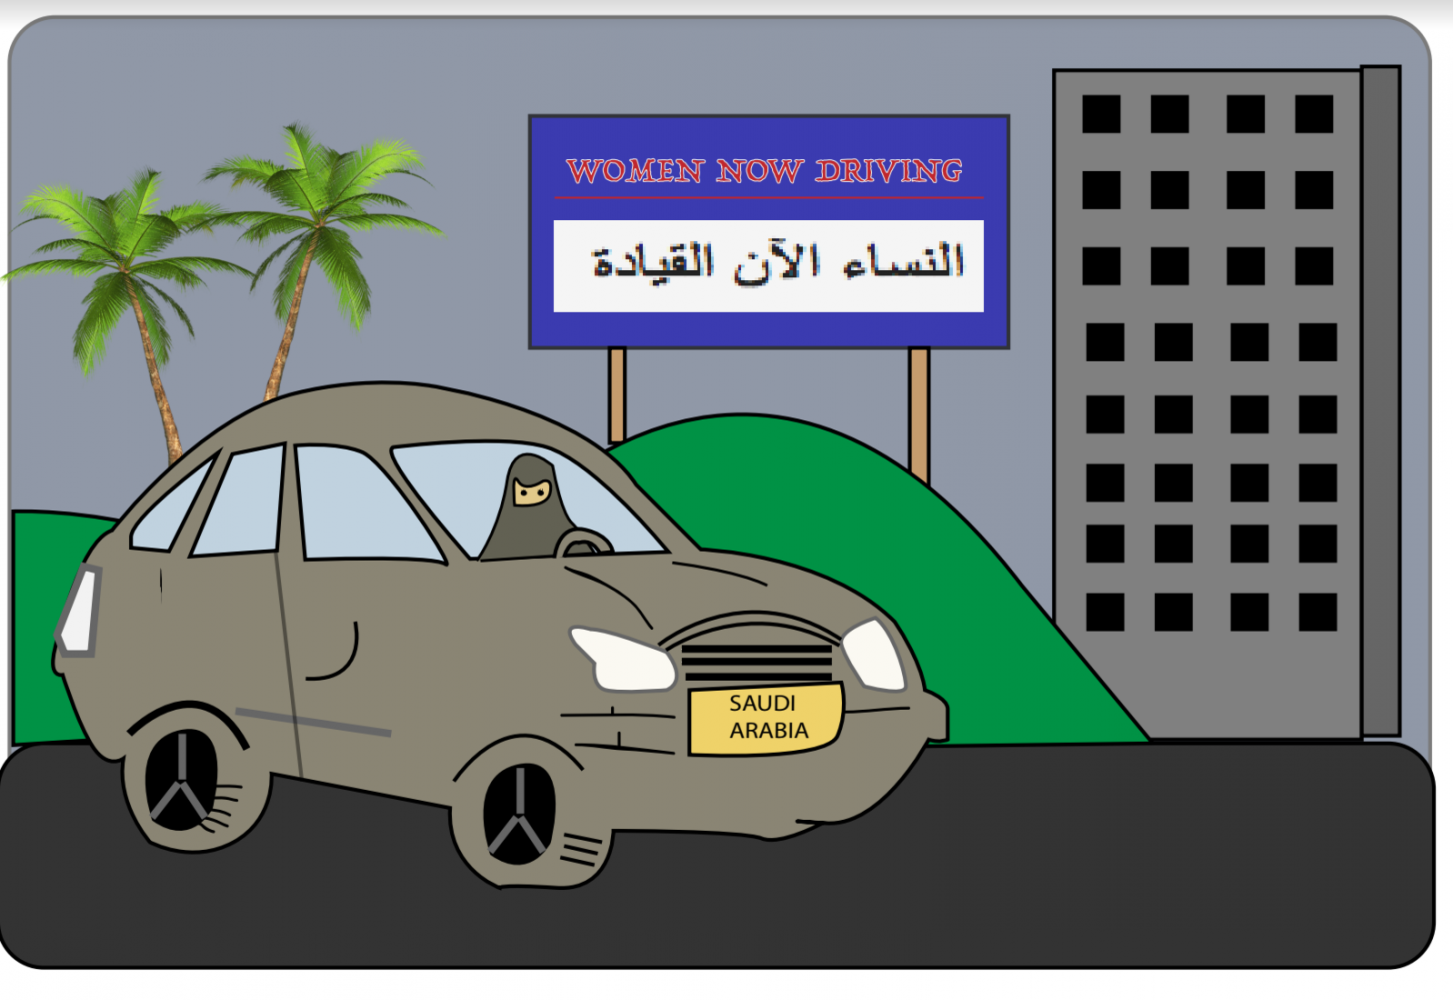 Motive behind Saudi Arabia's driving ban lift solidifies deeply flawed national ideology